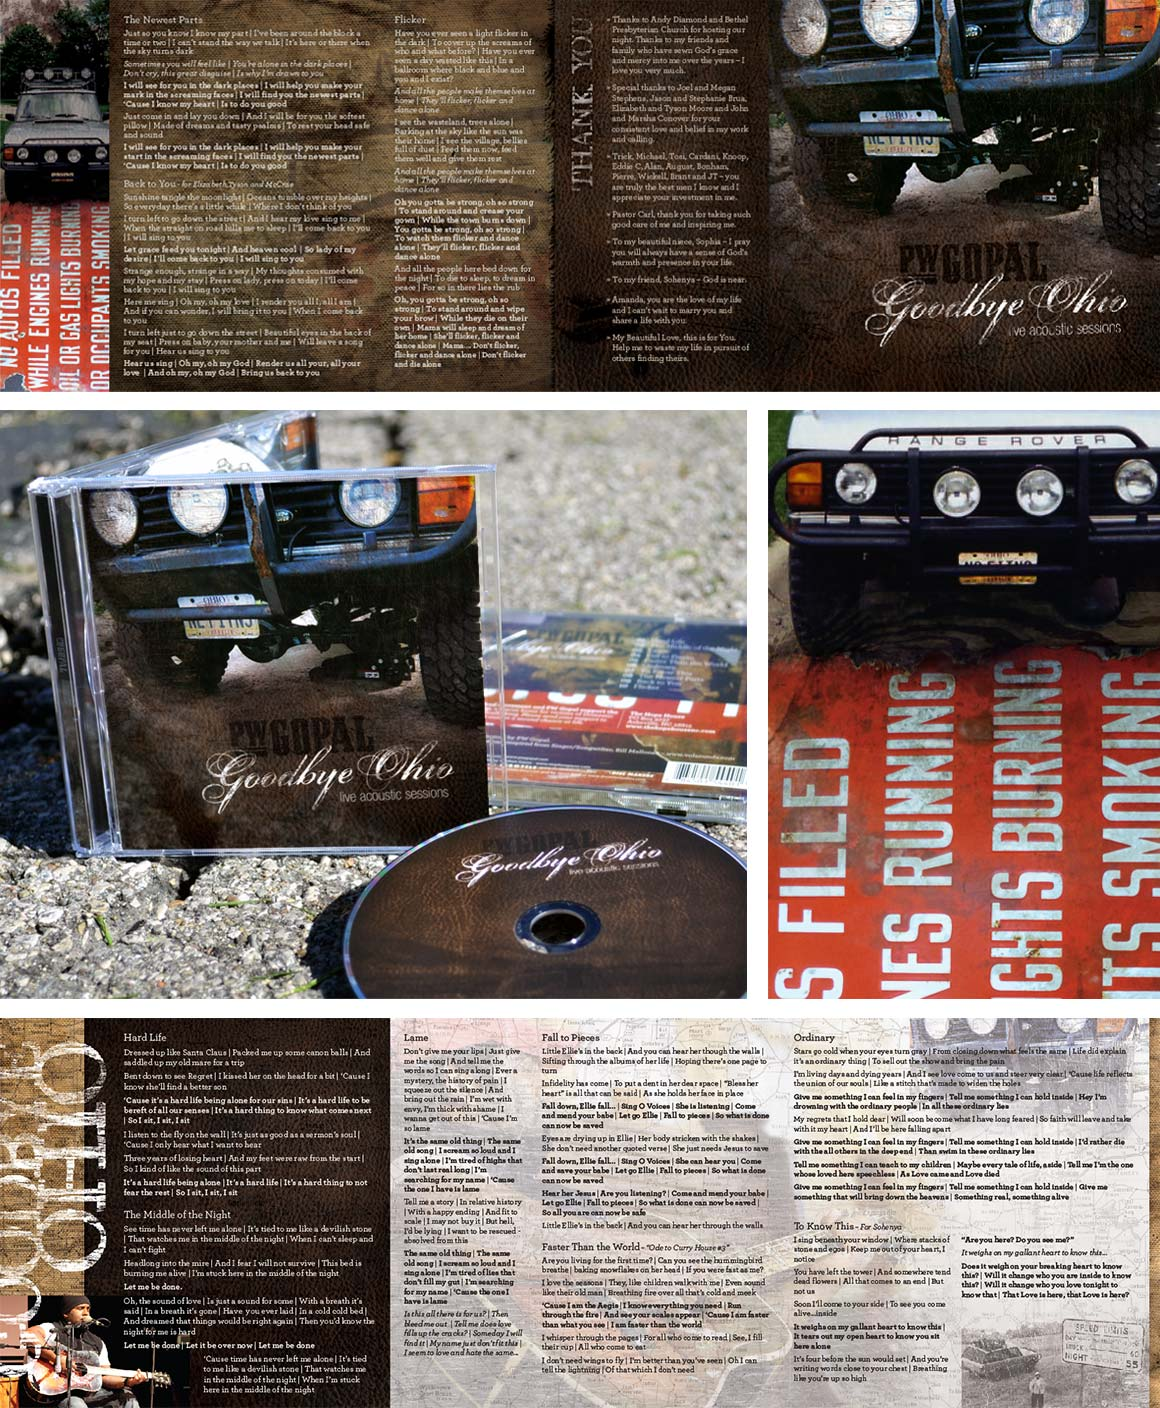 PW Gopal: Goodbye Ohio CD Packaging Design